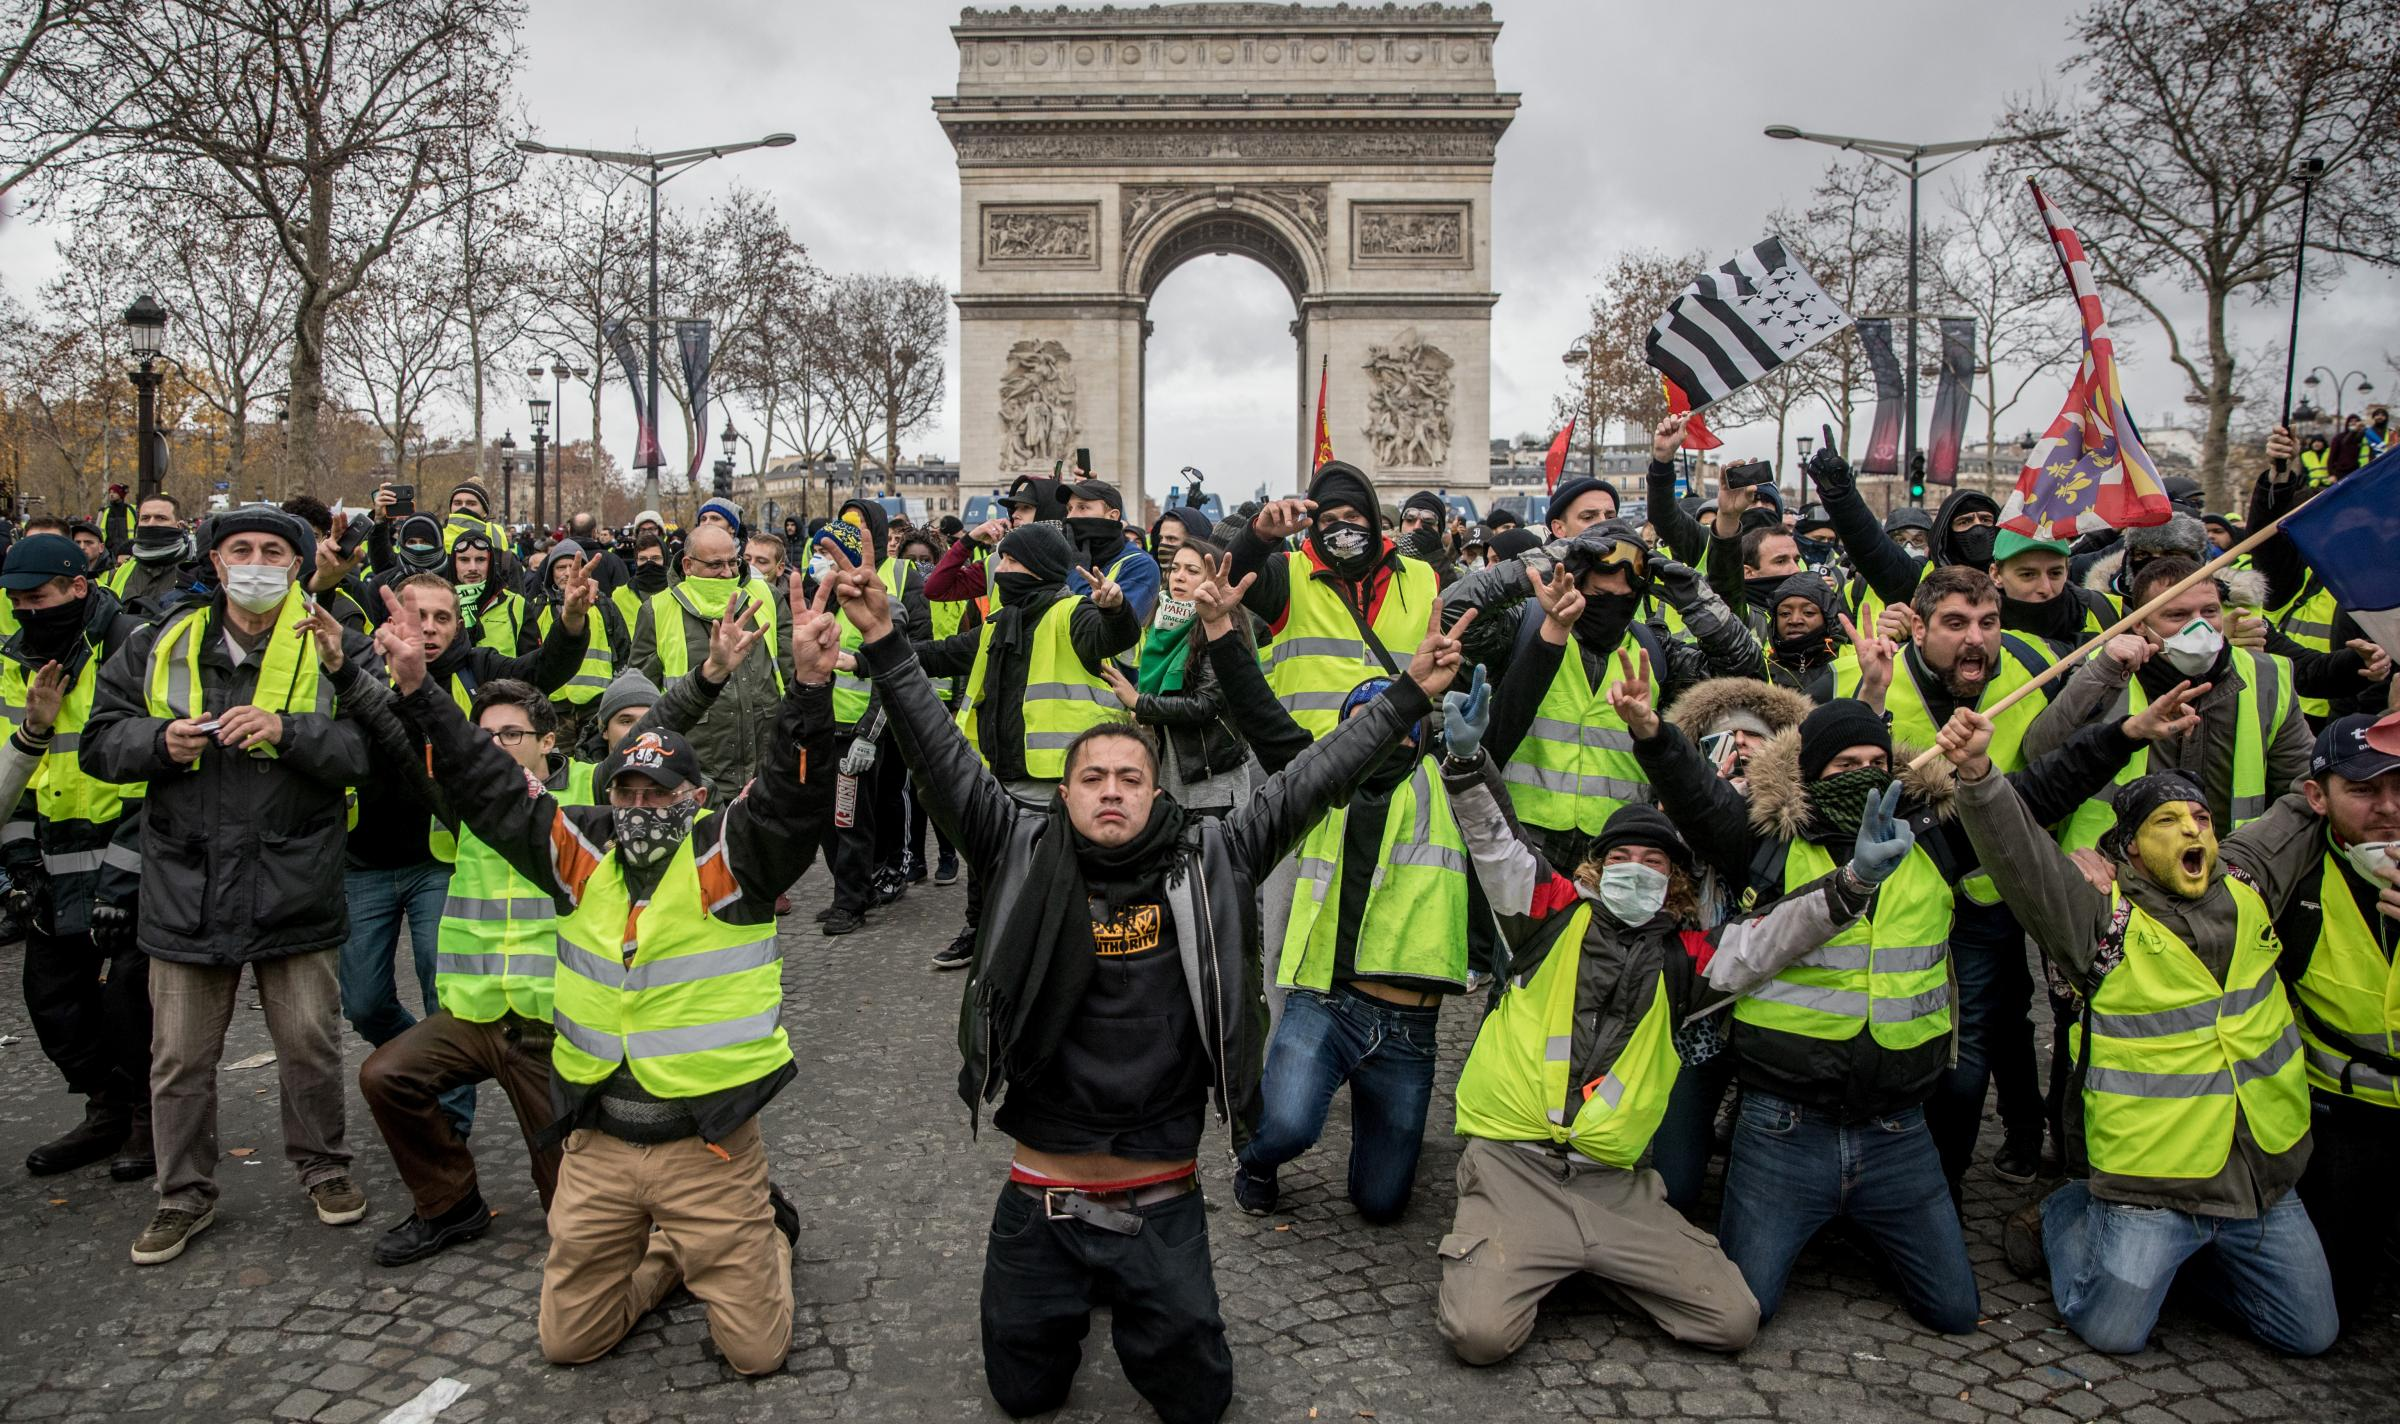 'We should state clearly that we want the yellow vests to win'